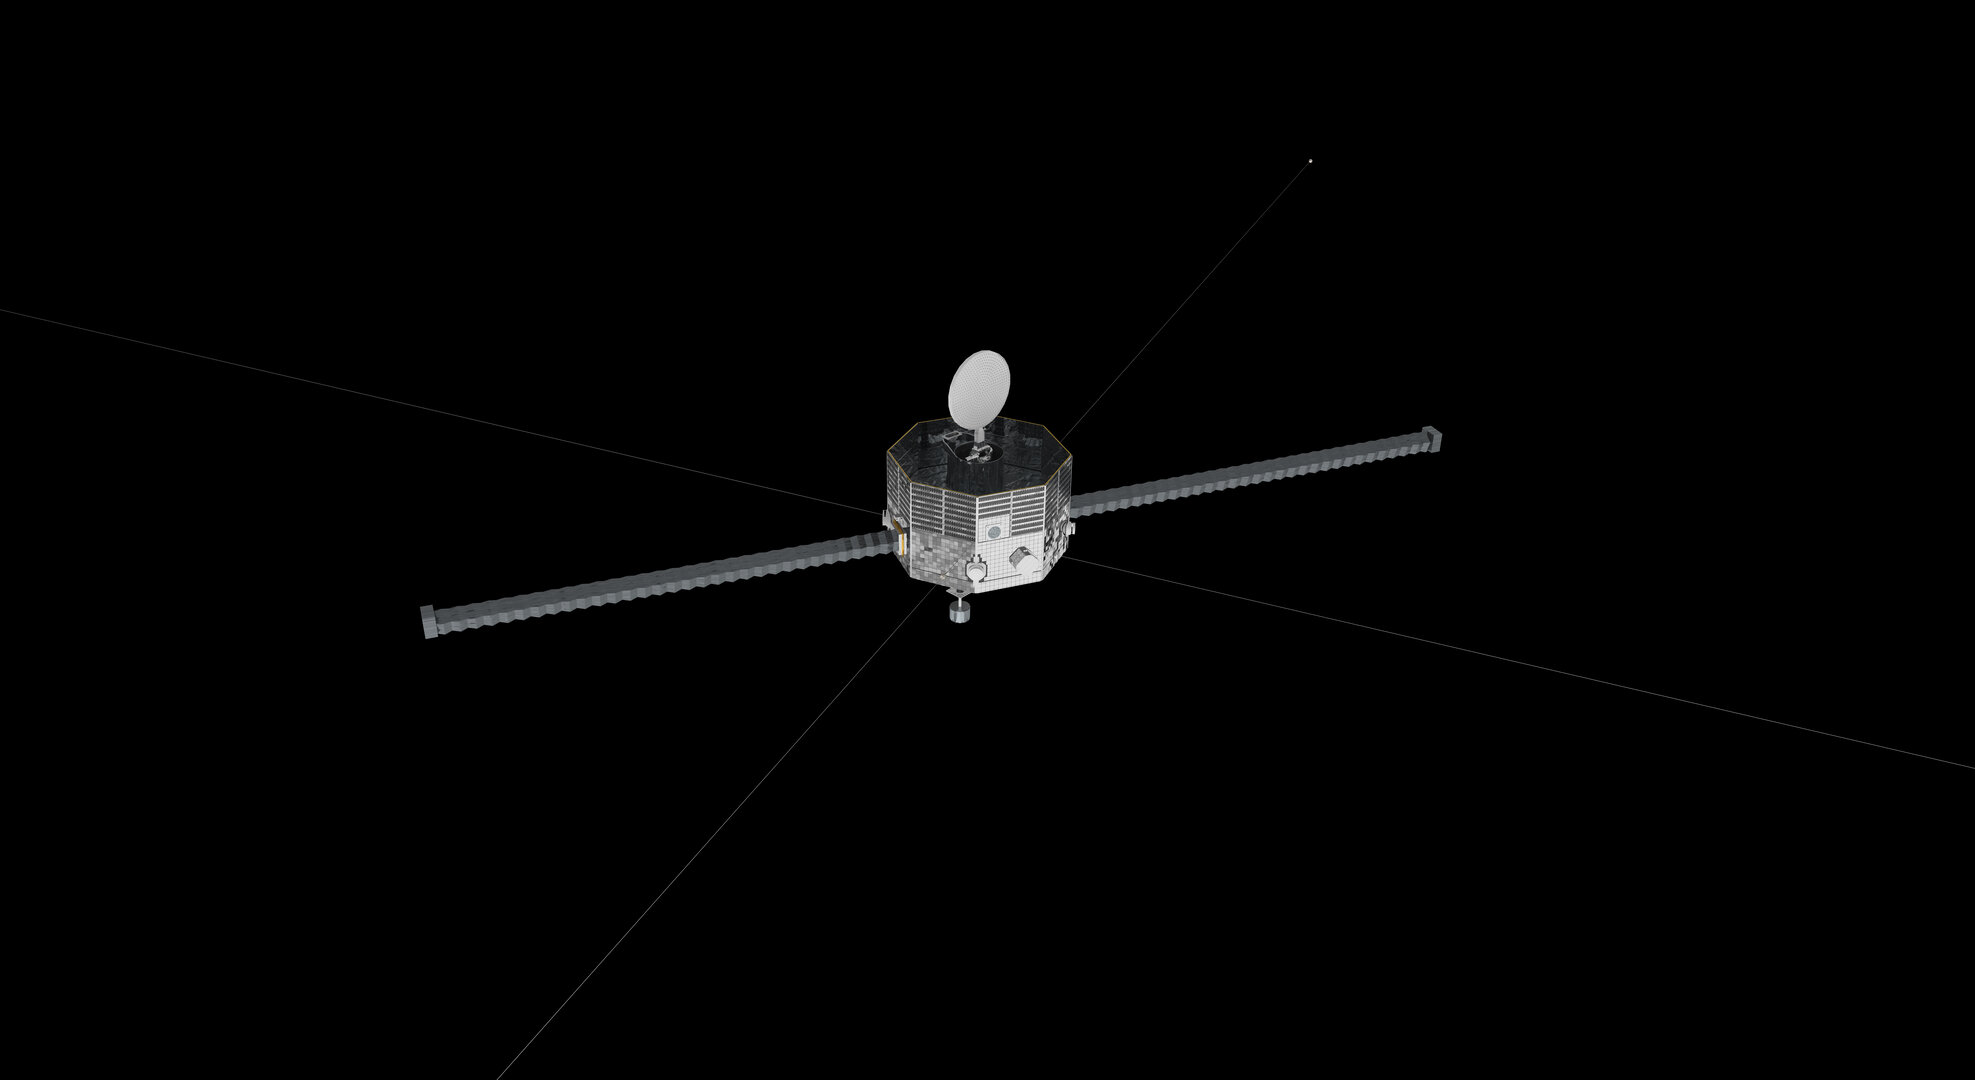 Mercury Magnetospheric Orbiter, top view